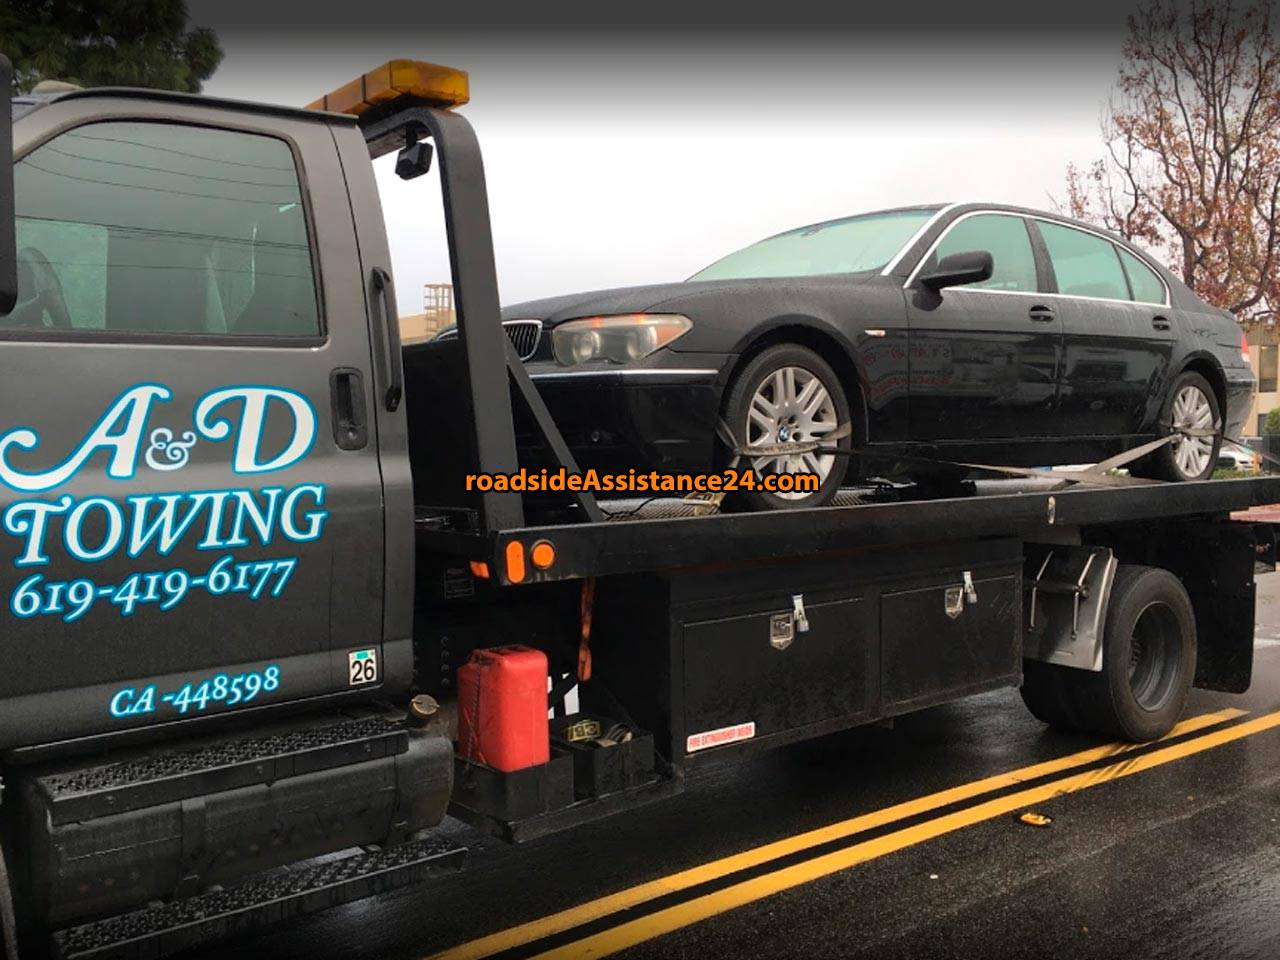 A & D Towing